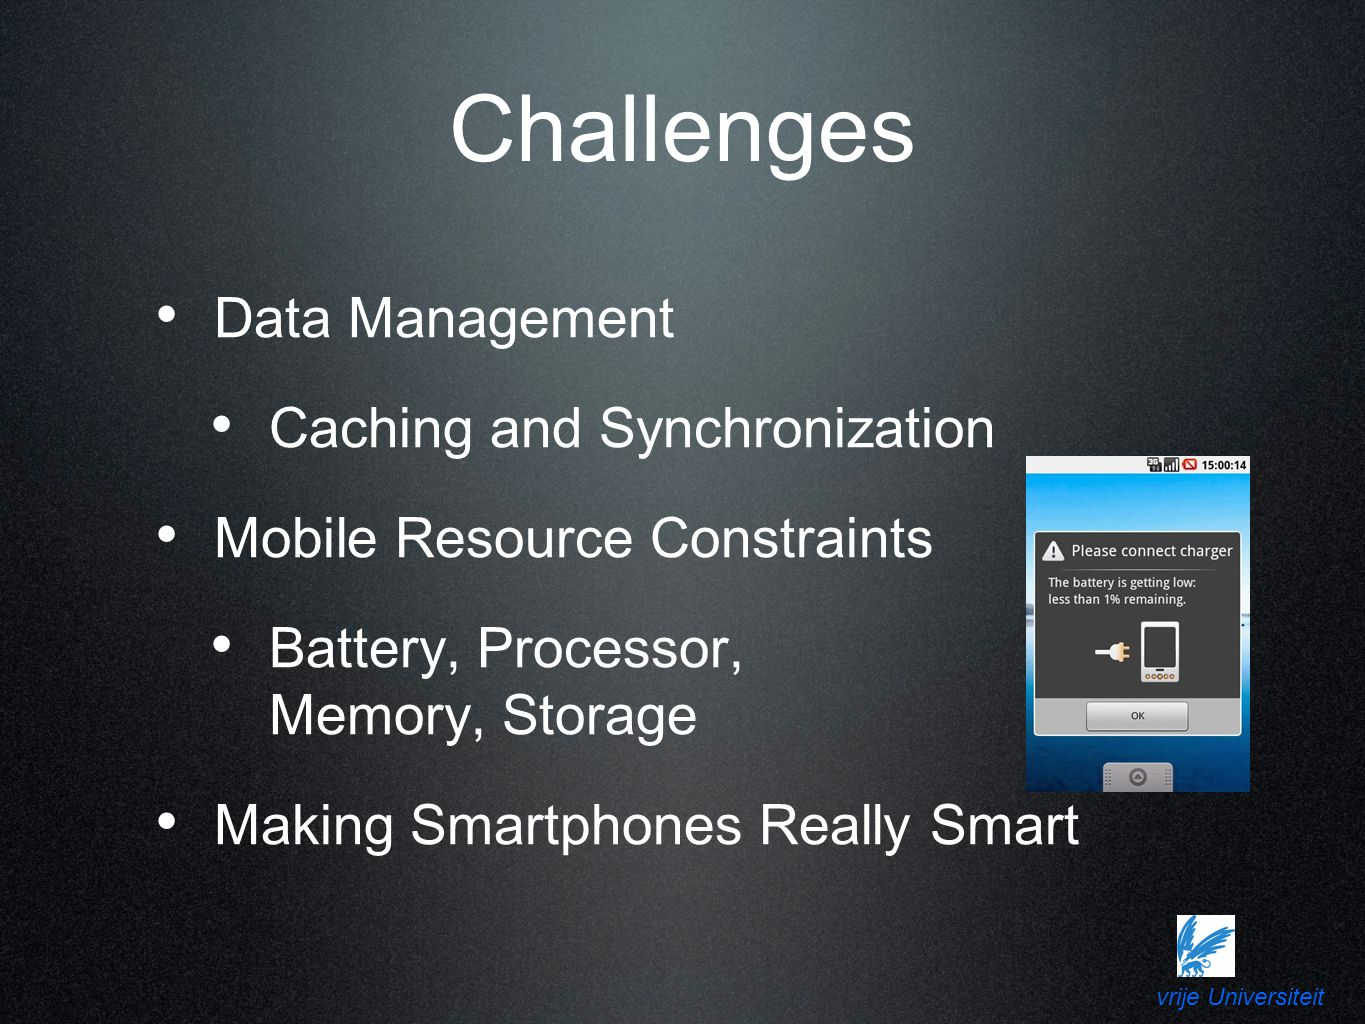 vrije Universiteit Challenges Data Management Caching and Synchronization Mobile Resource Constraints Battery, Processor, Memory, Storage Making Smartphones Really Smart